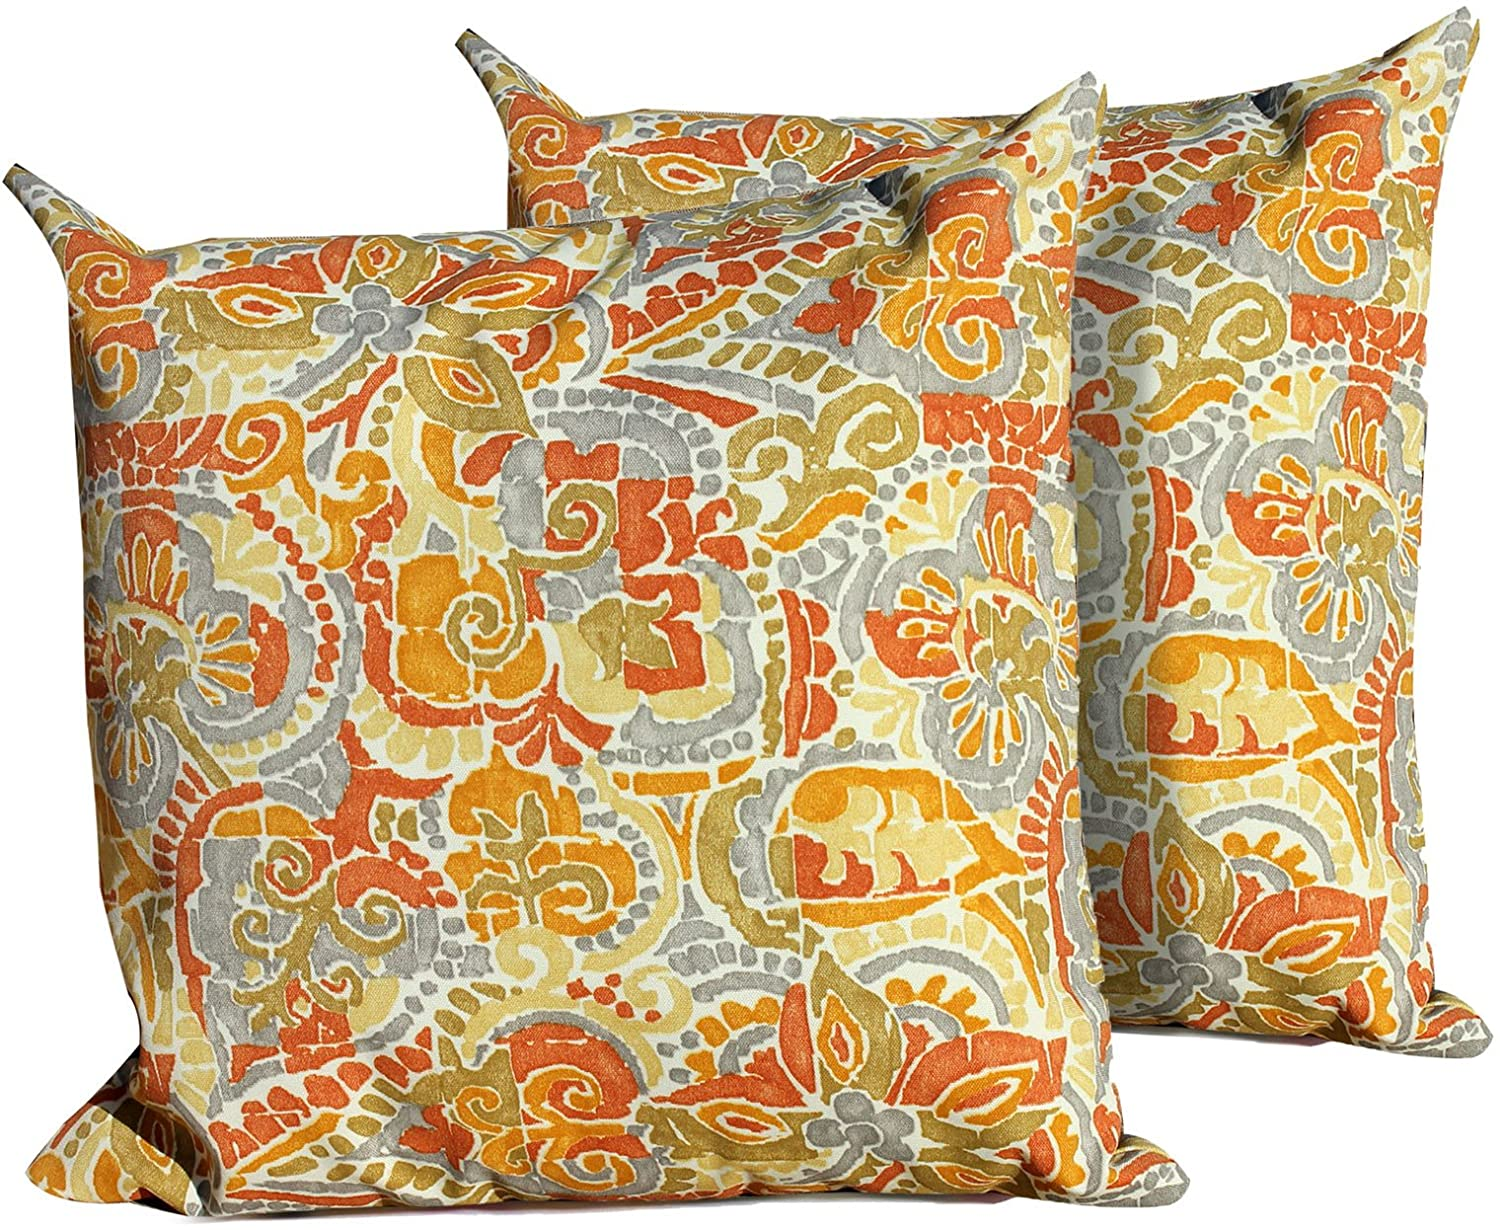 TK Classics Outdoor Square Throw Pillow, Set of 2, Marigold